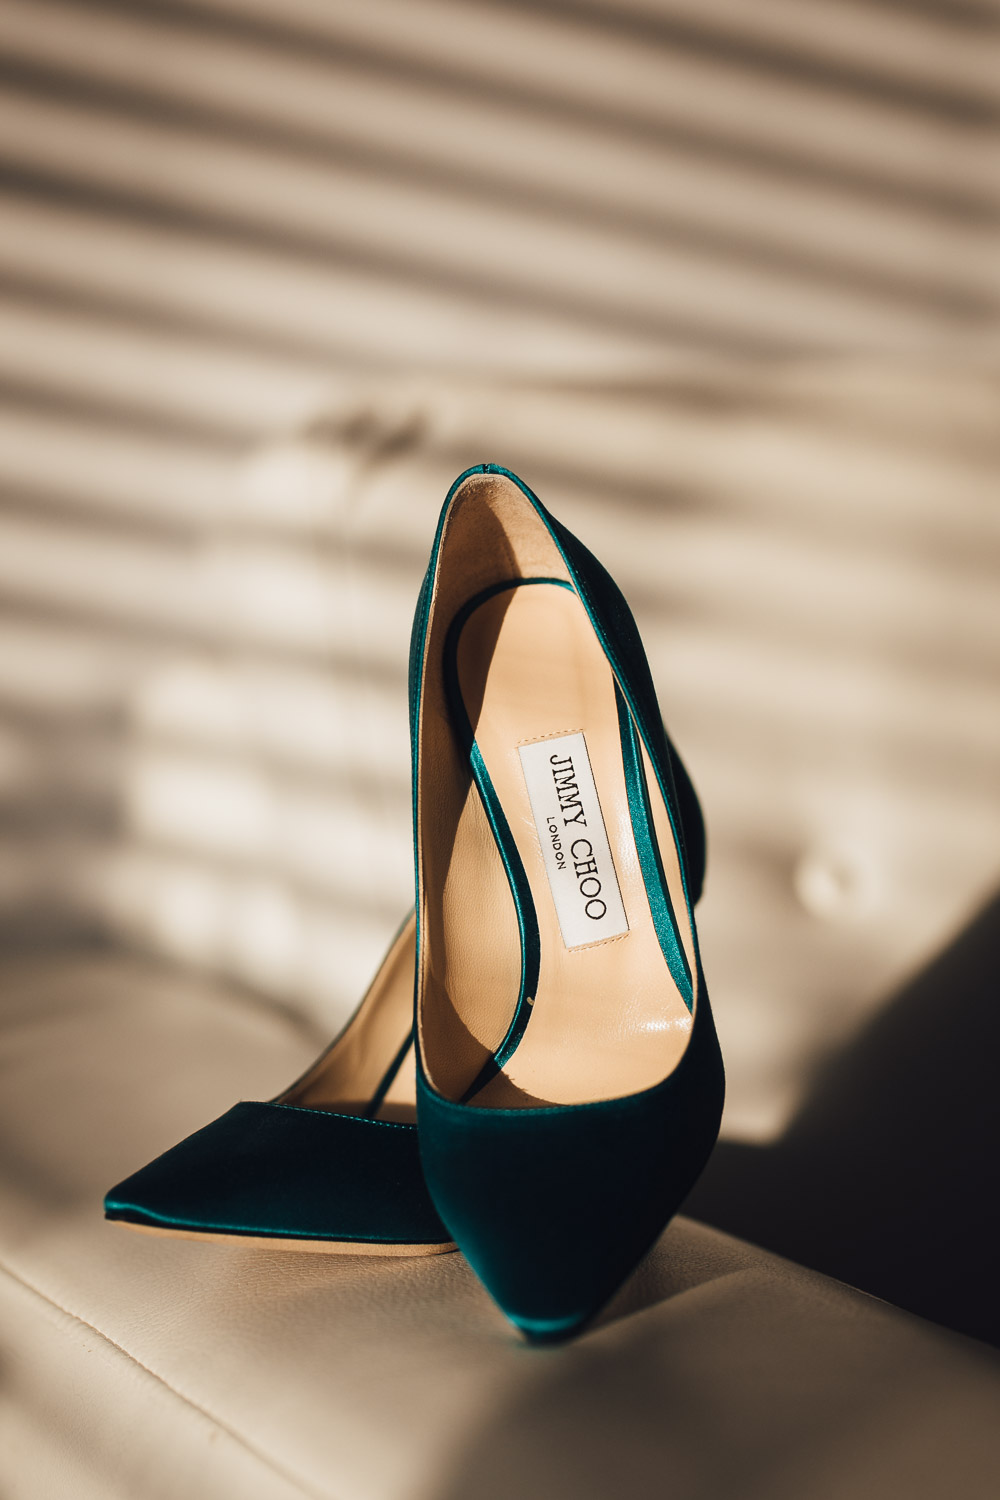 jimmy choo wedding shoes vancouver wedding photography